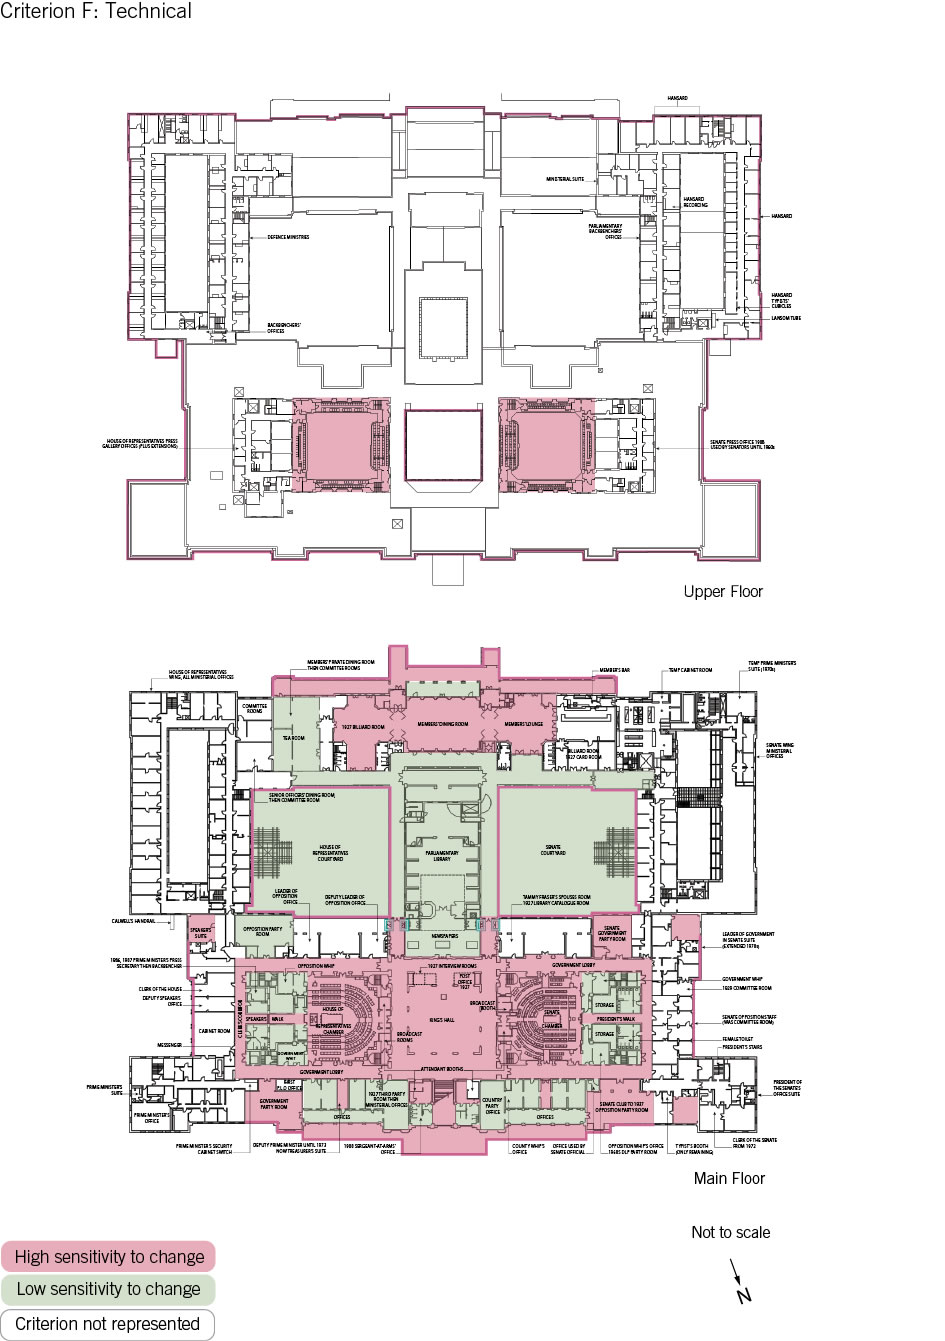 Old Parliament House upper and main floor plan showing the zones according to criterion F: technical.